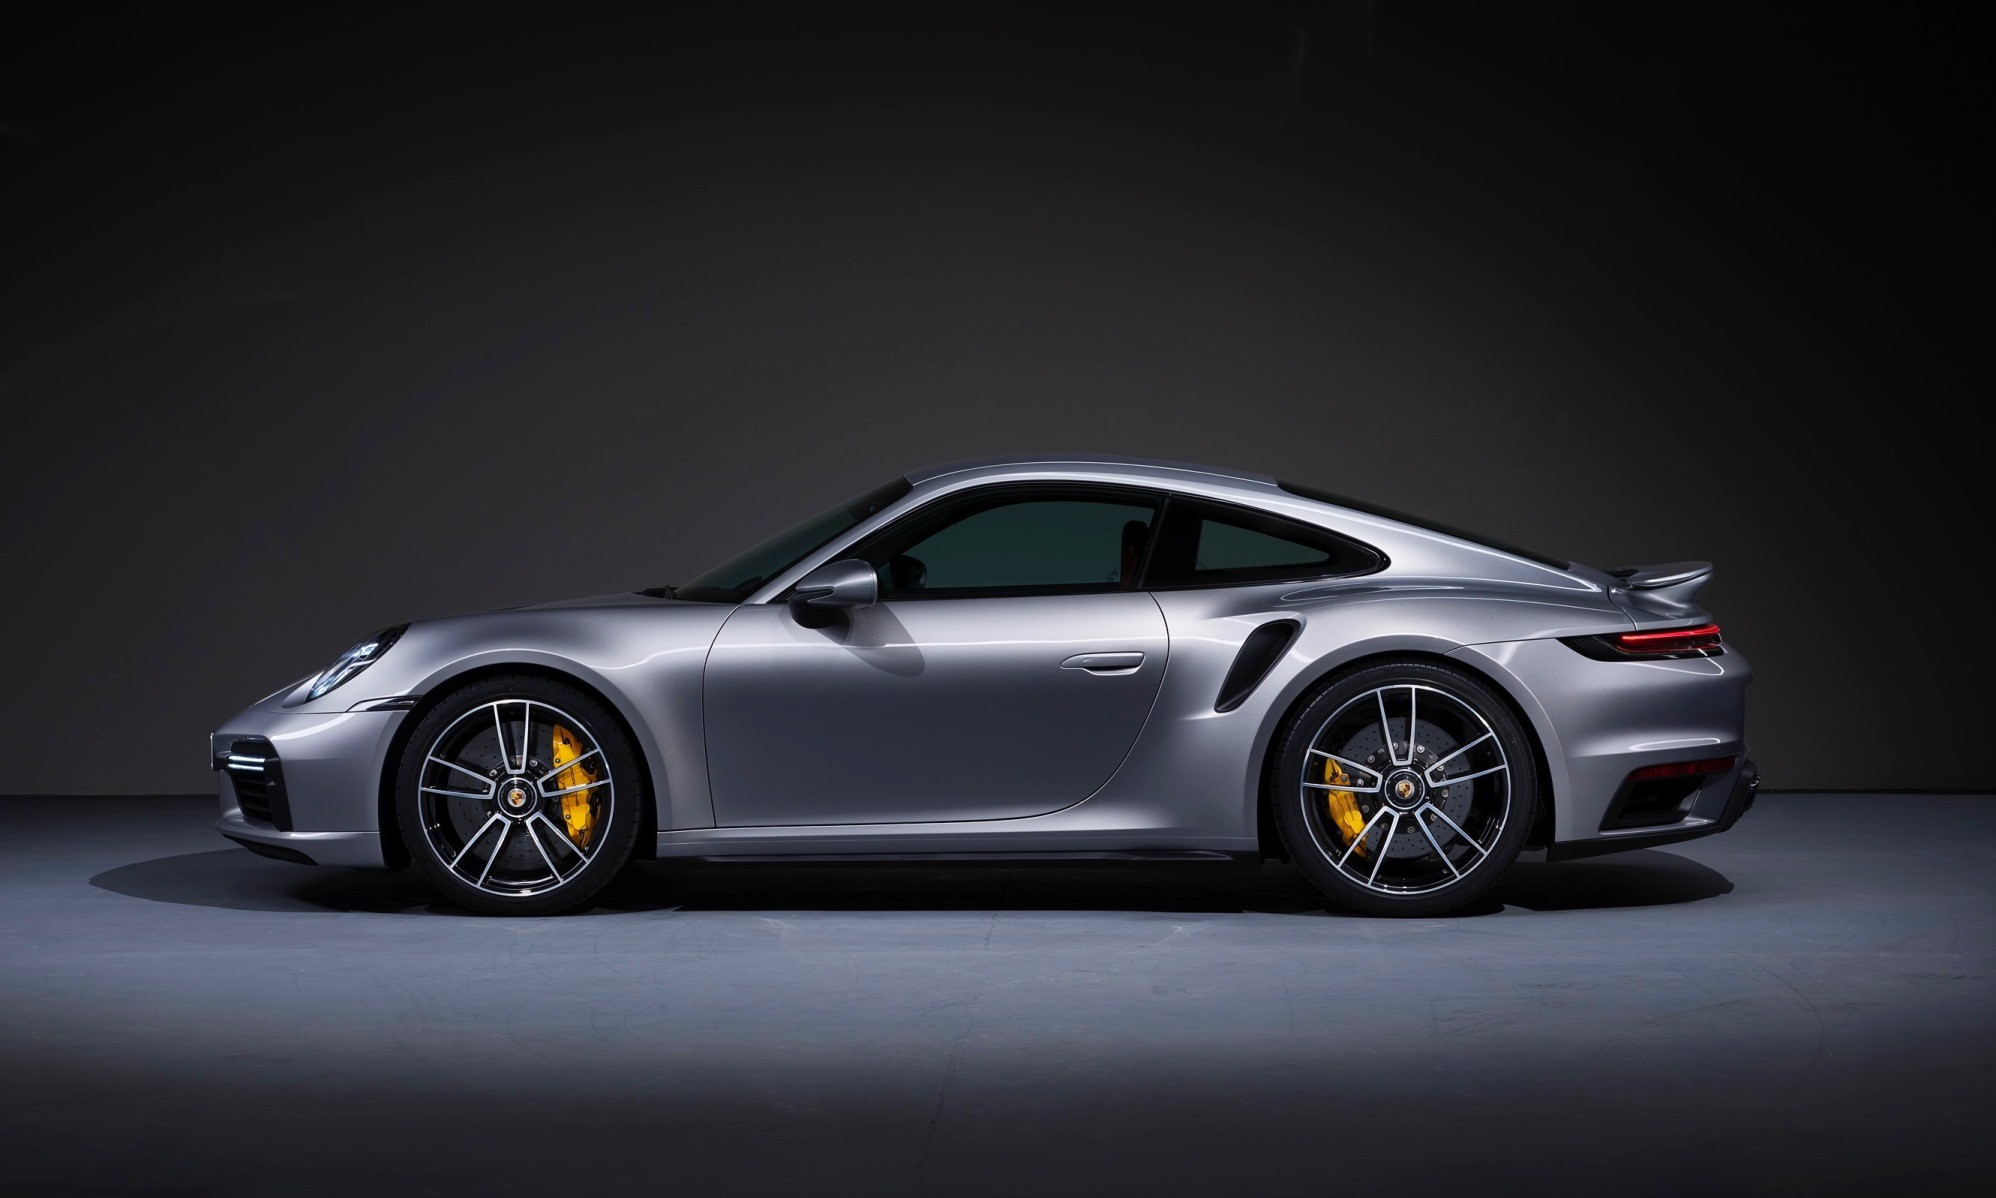 New Porsche 911 Turbo S Coupe profile